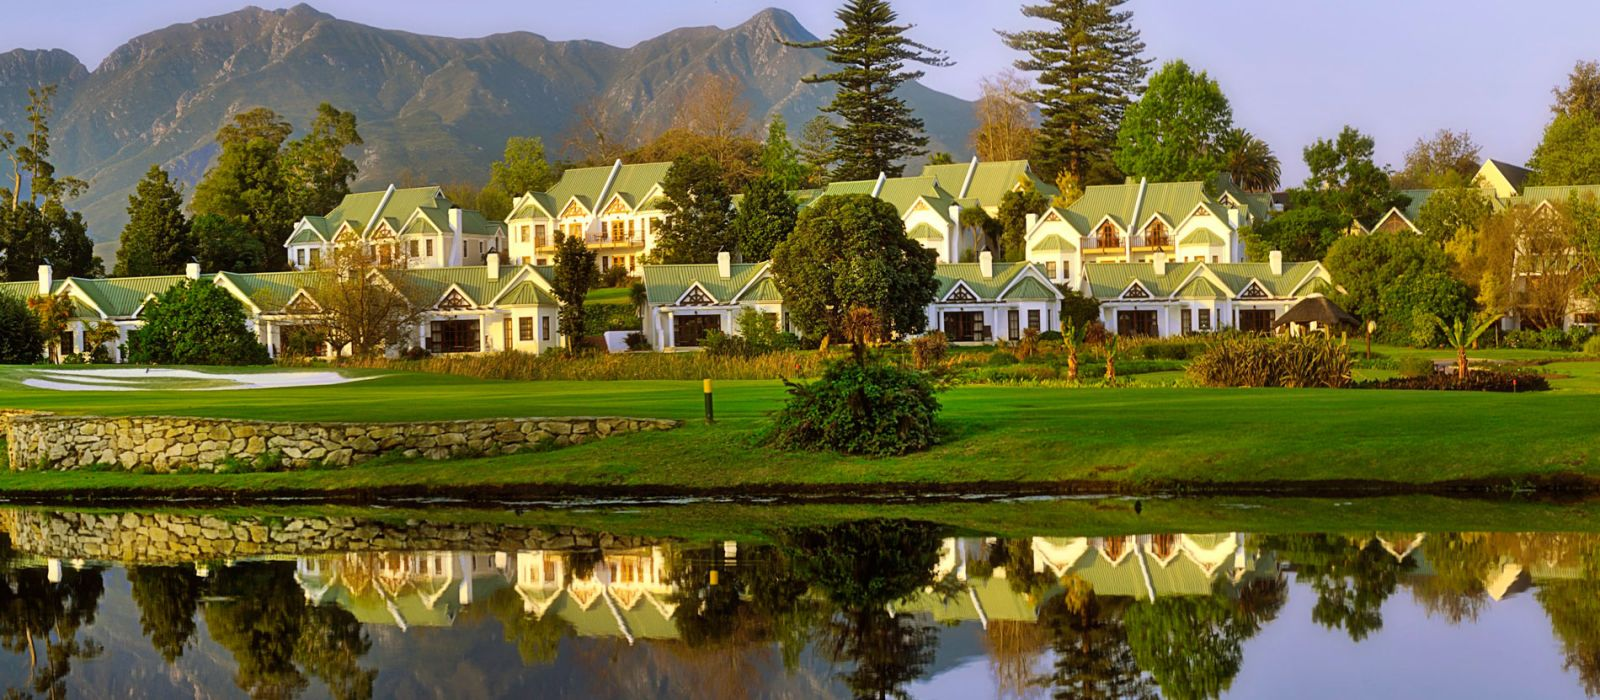 Hotel The Fancourt  South Africa